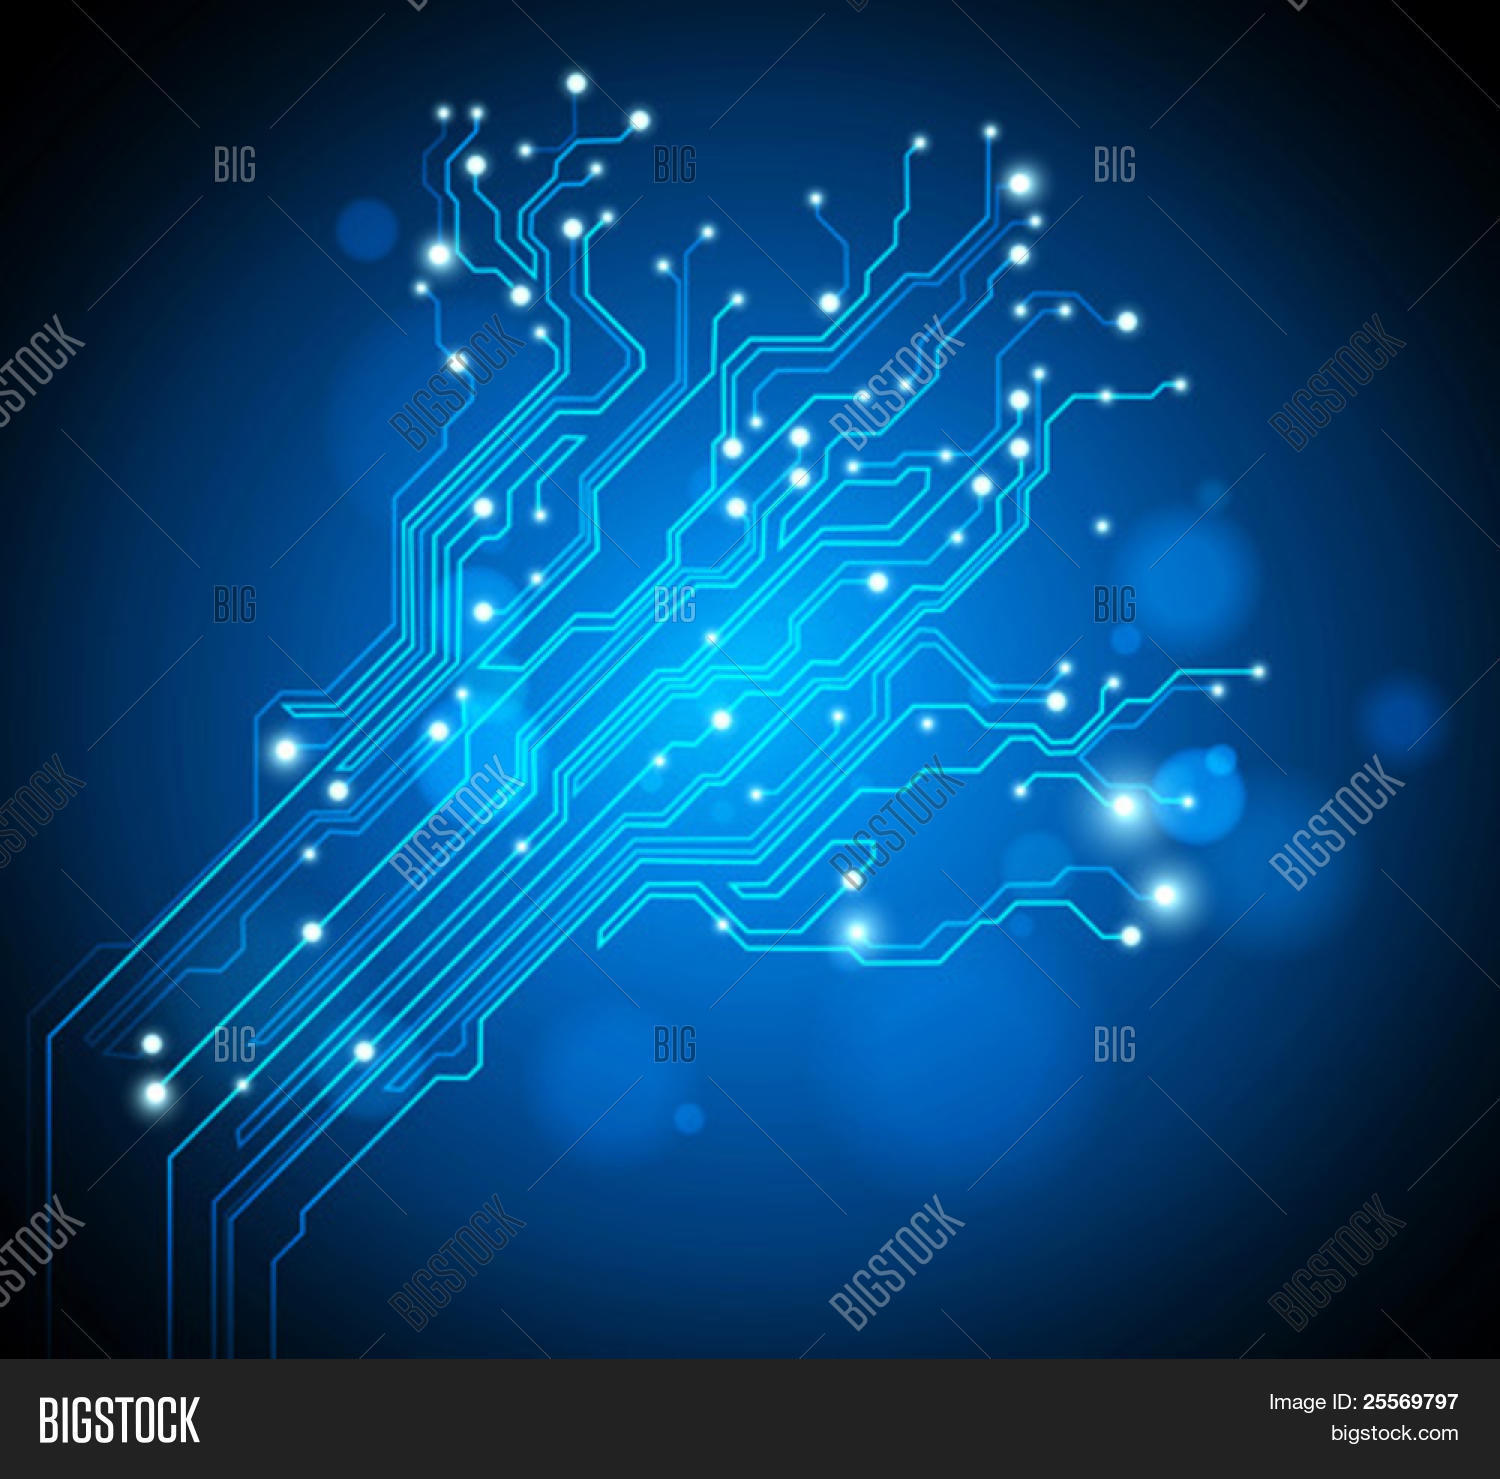 Circuit Board Images Illustrations Vectors Free Bigstock Abstact Background With And Binary Code Stock Tree Creative Idea Vector